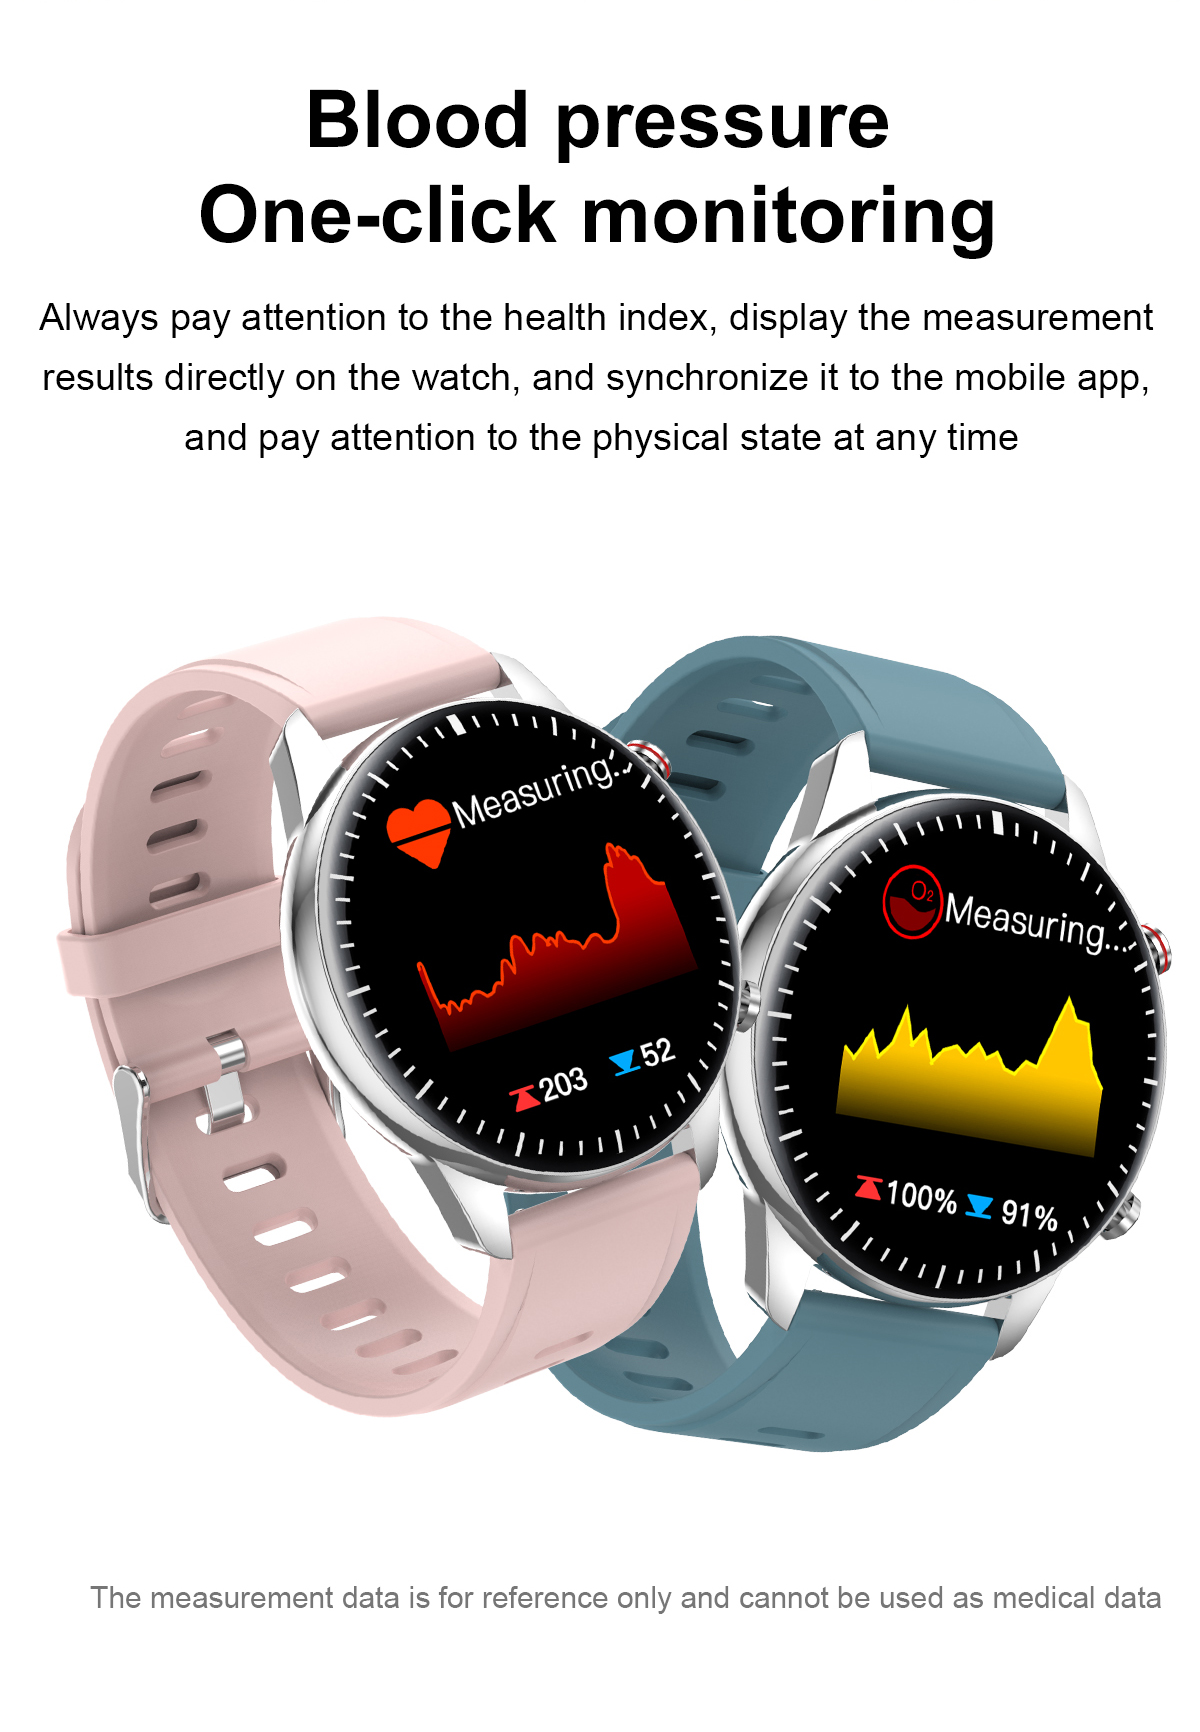 Hd9a0e256664b4779b9ff21b0c1e31125o 2021 NEW Smart Watch Women Men Full Touch Fitness Tracker IP67 Waterproof Smartwatch For Android Xiaomi Redmi